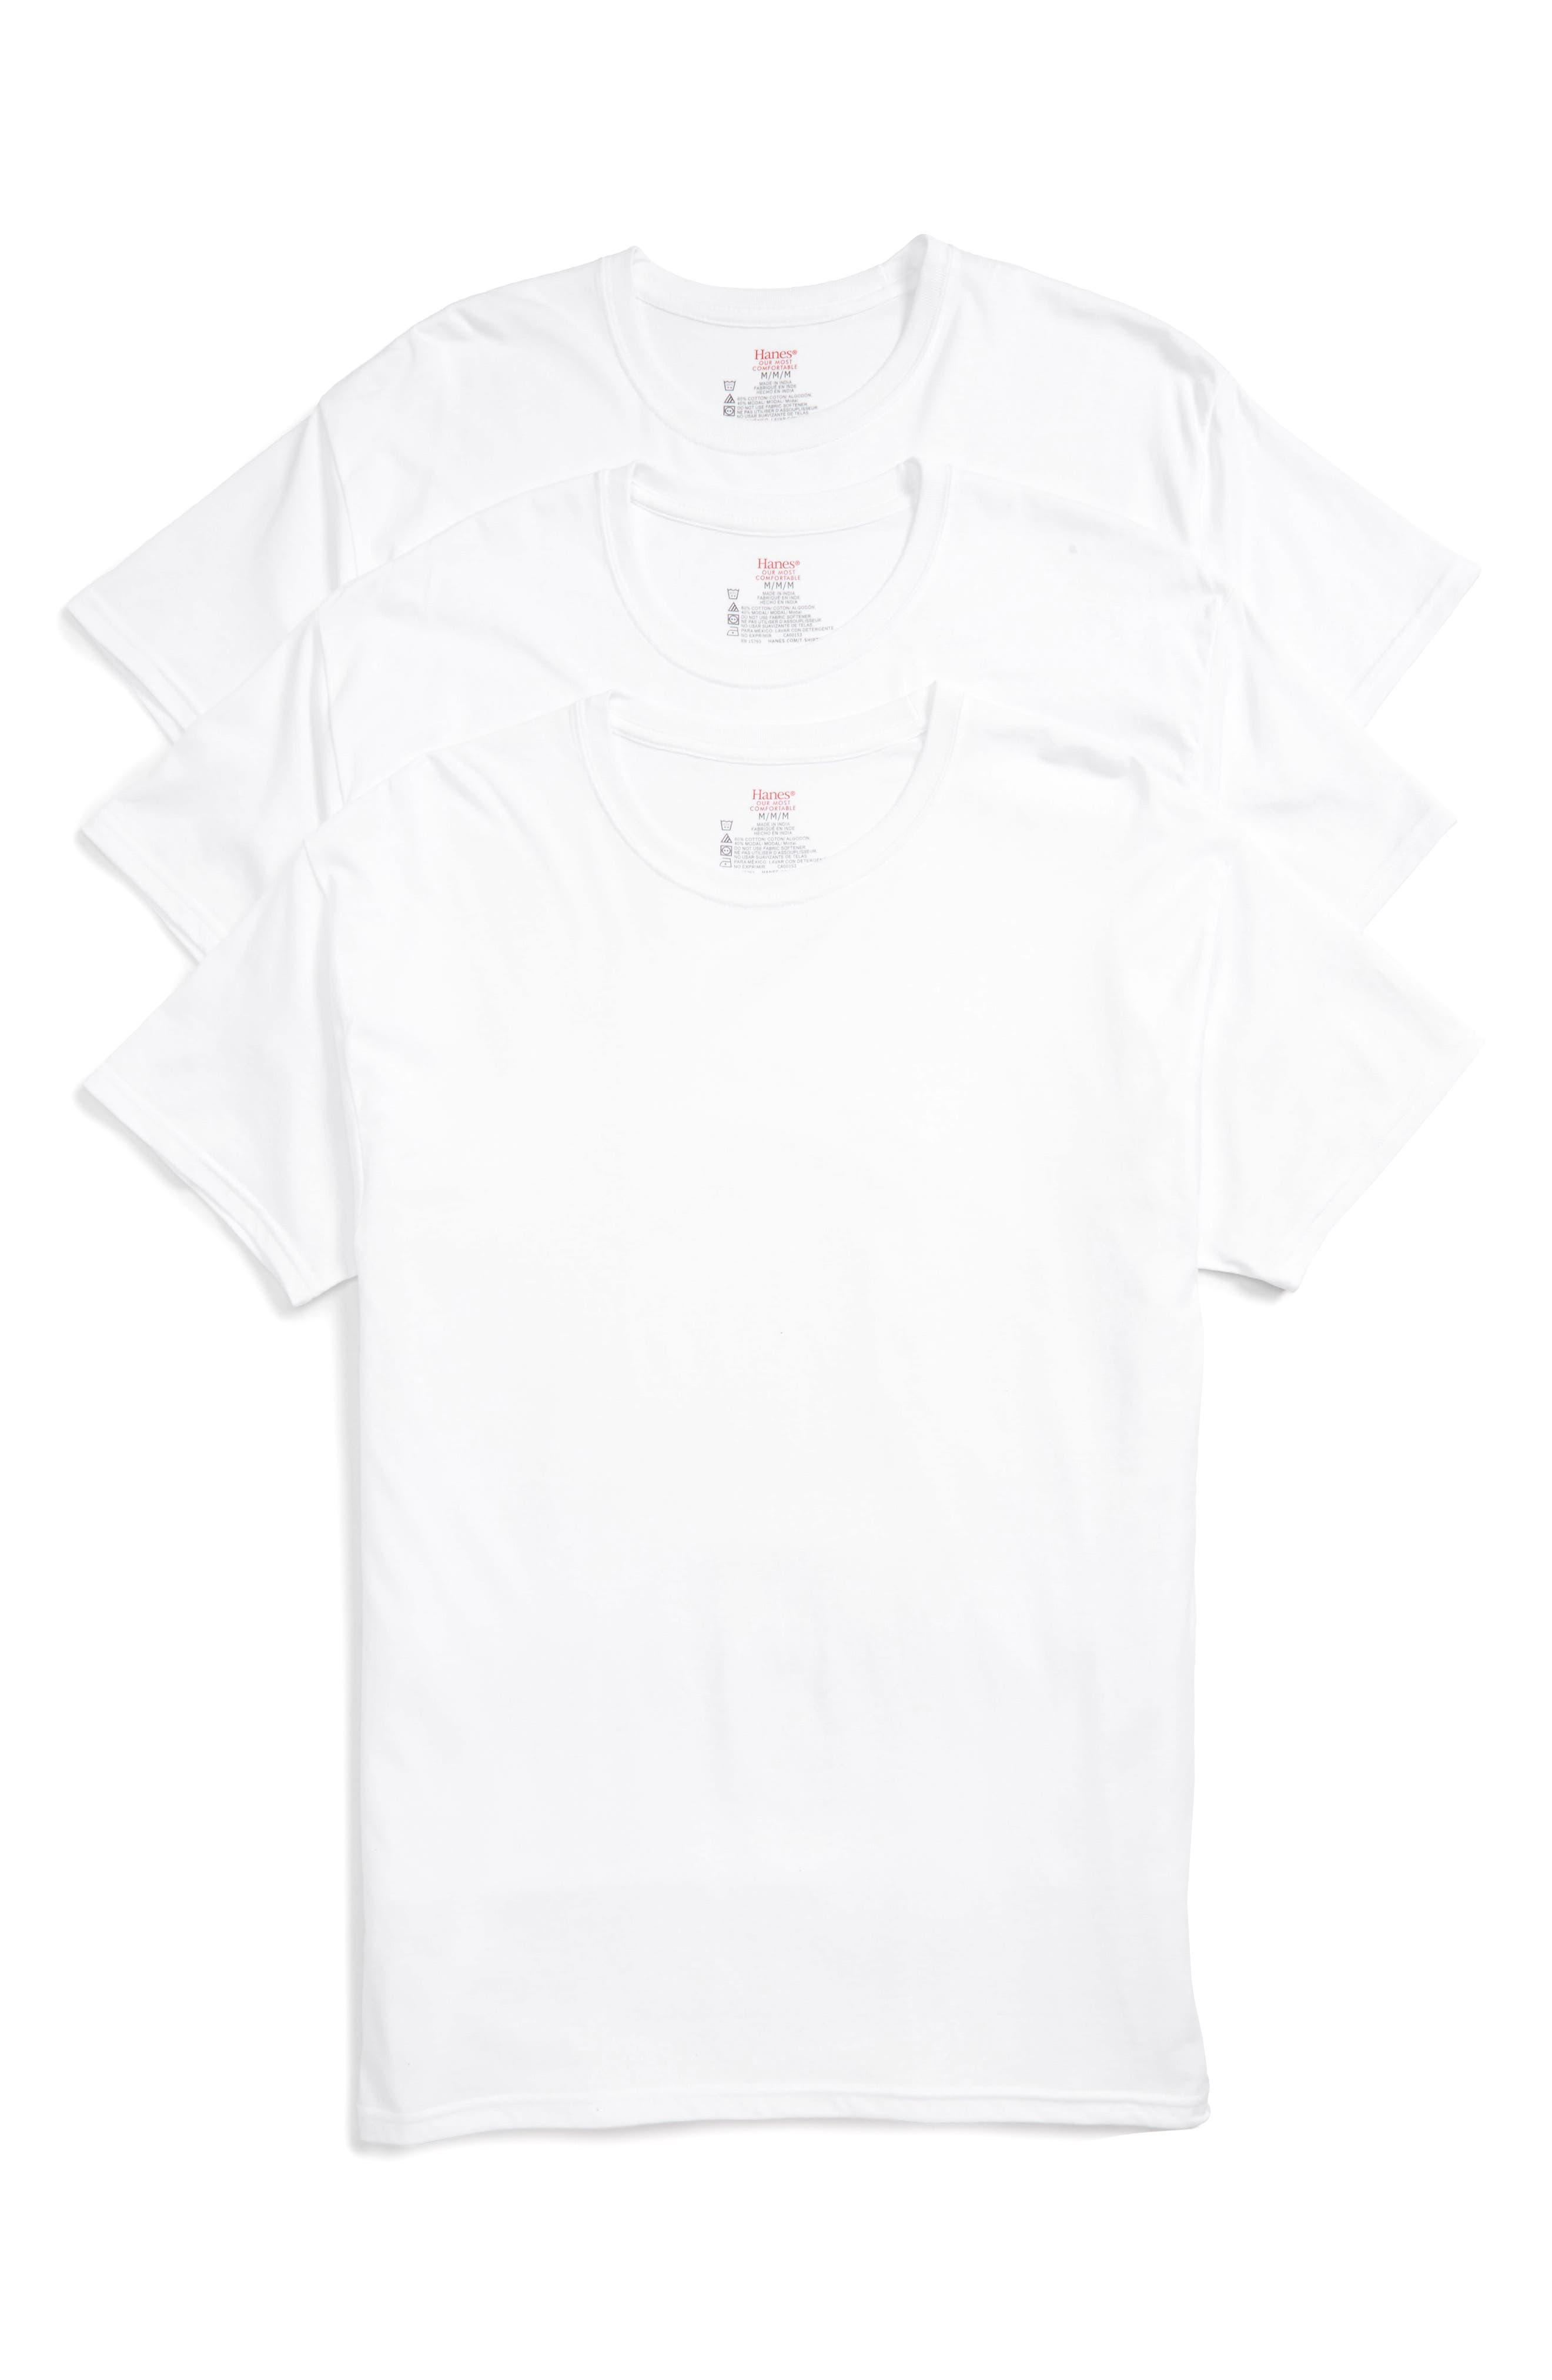 Luxury Essentials 3-Pack T-Shirt,                         Main,                         color, White